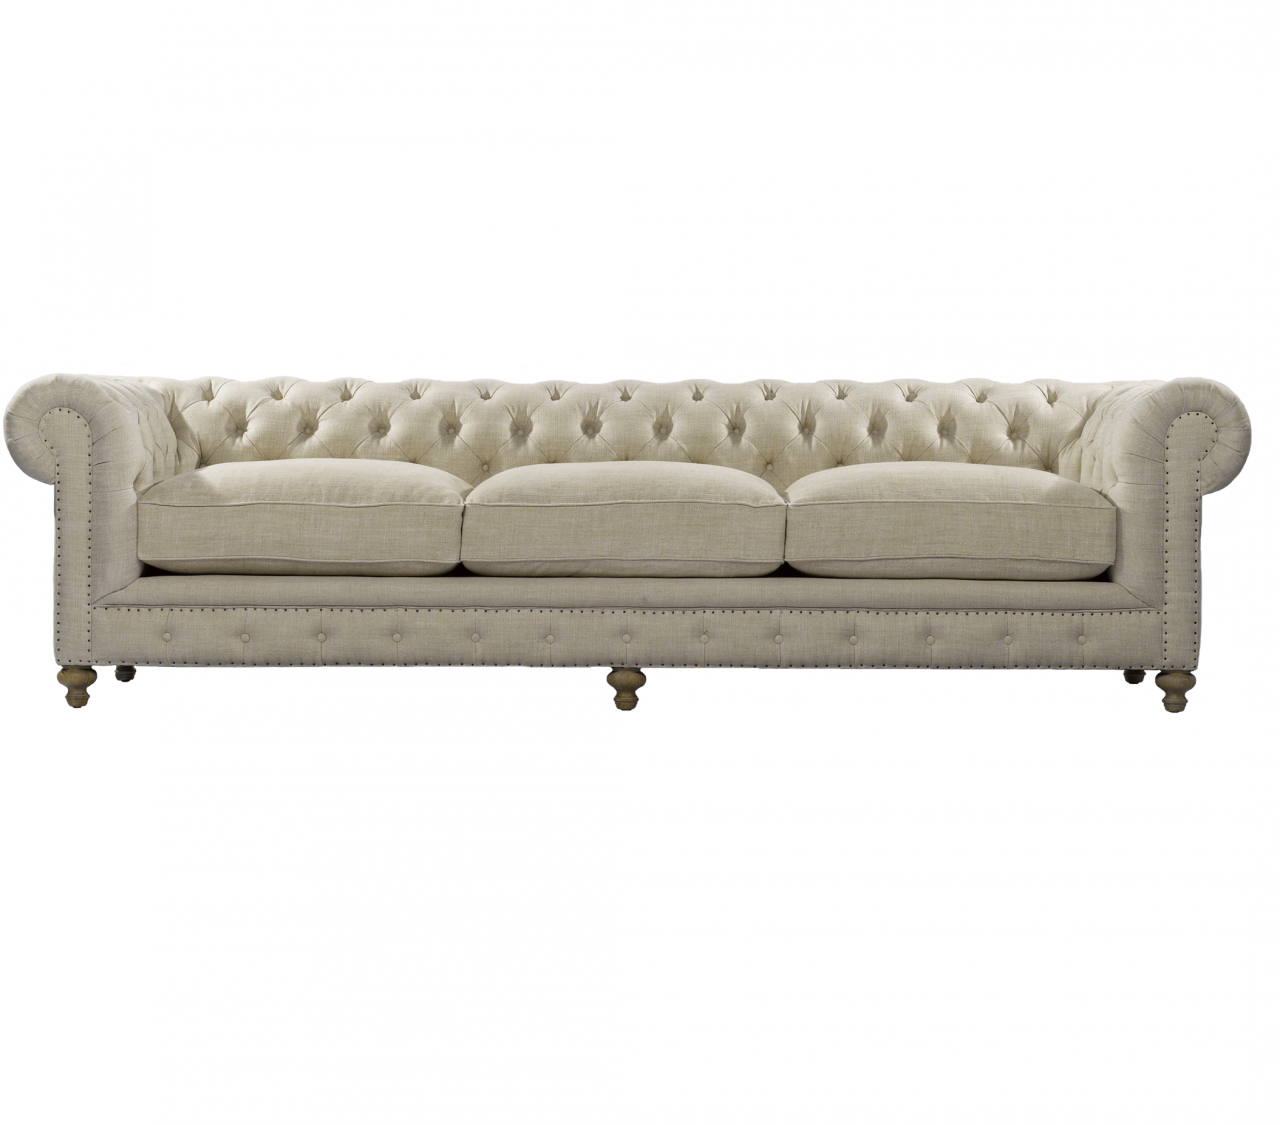 chesterfield cigar club tufted linen upholstered sofa 118 zin home rh zinhome com chesterfield sofa lincoln nebraska chesterfield sofa grey linen